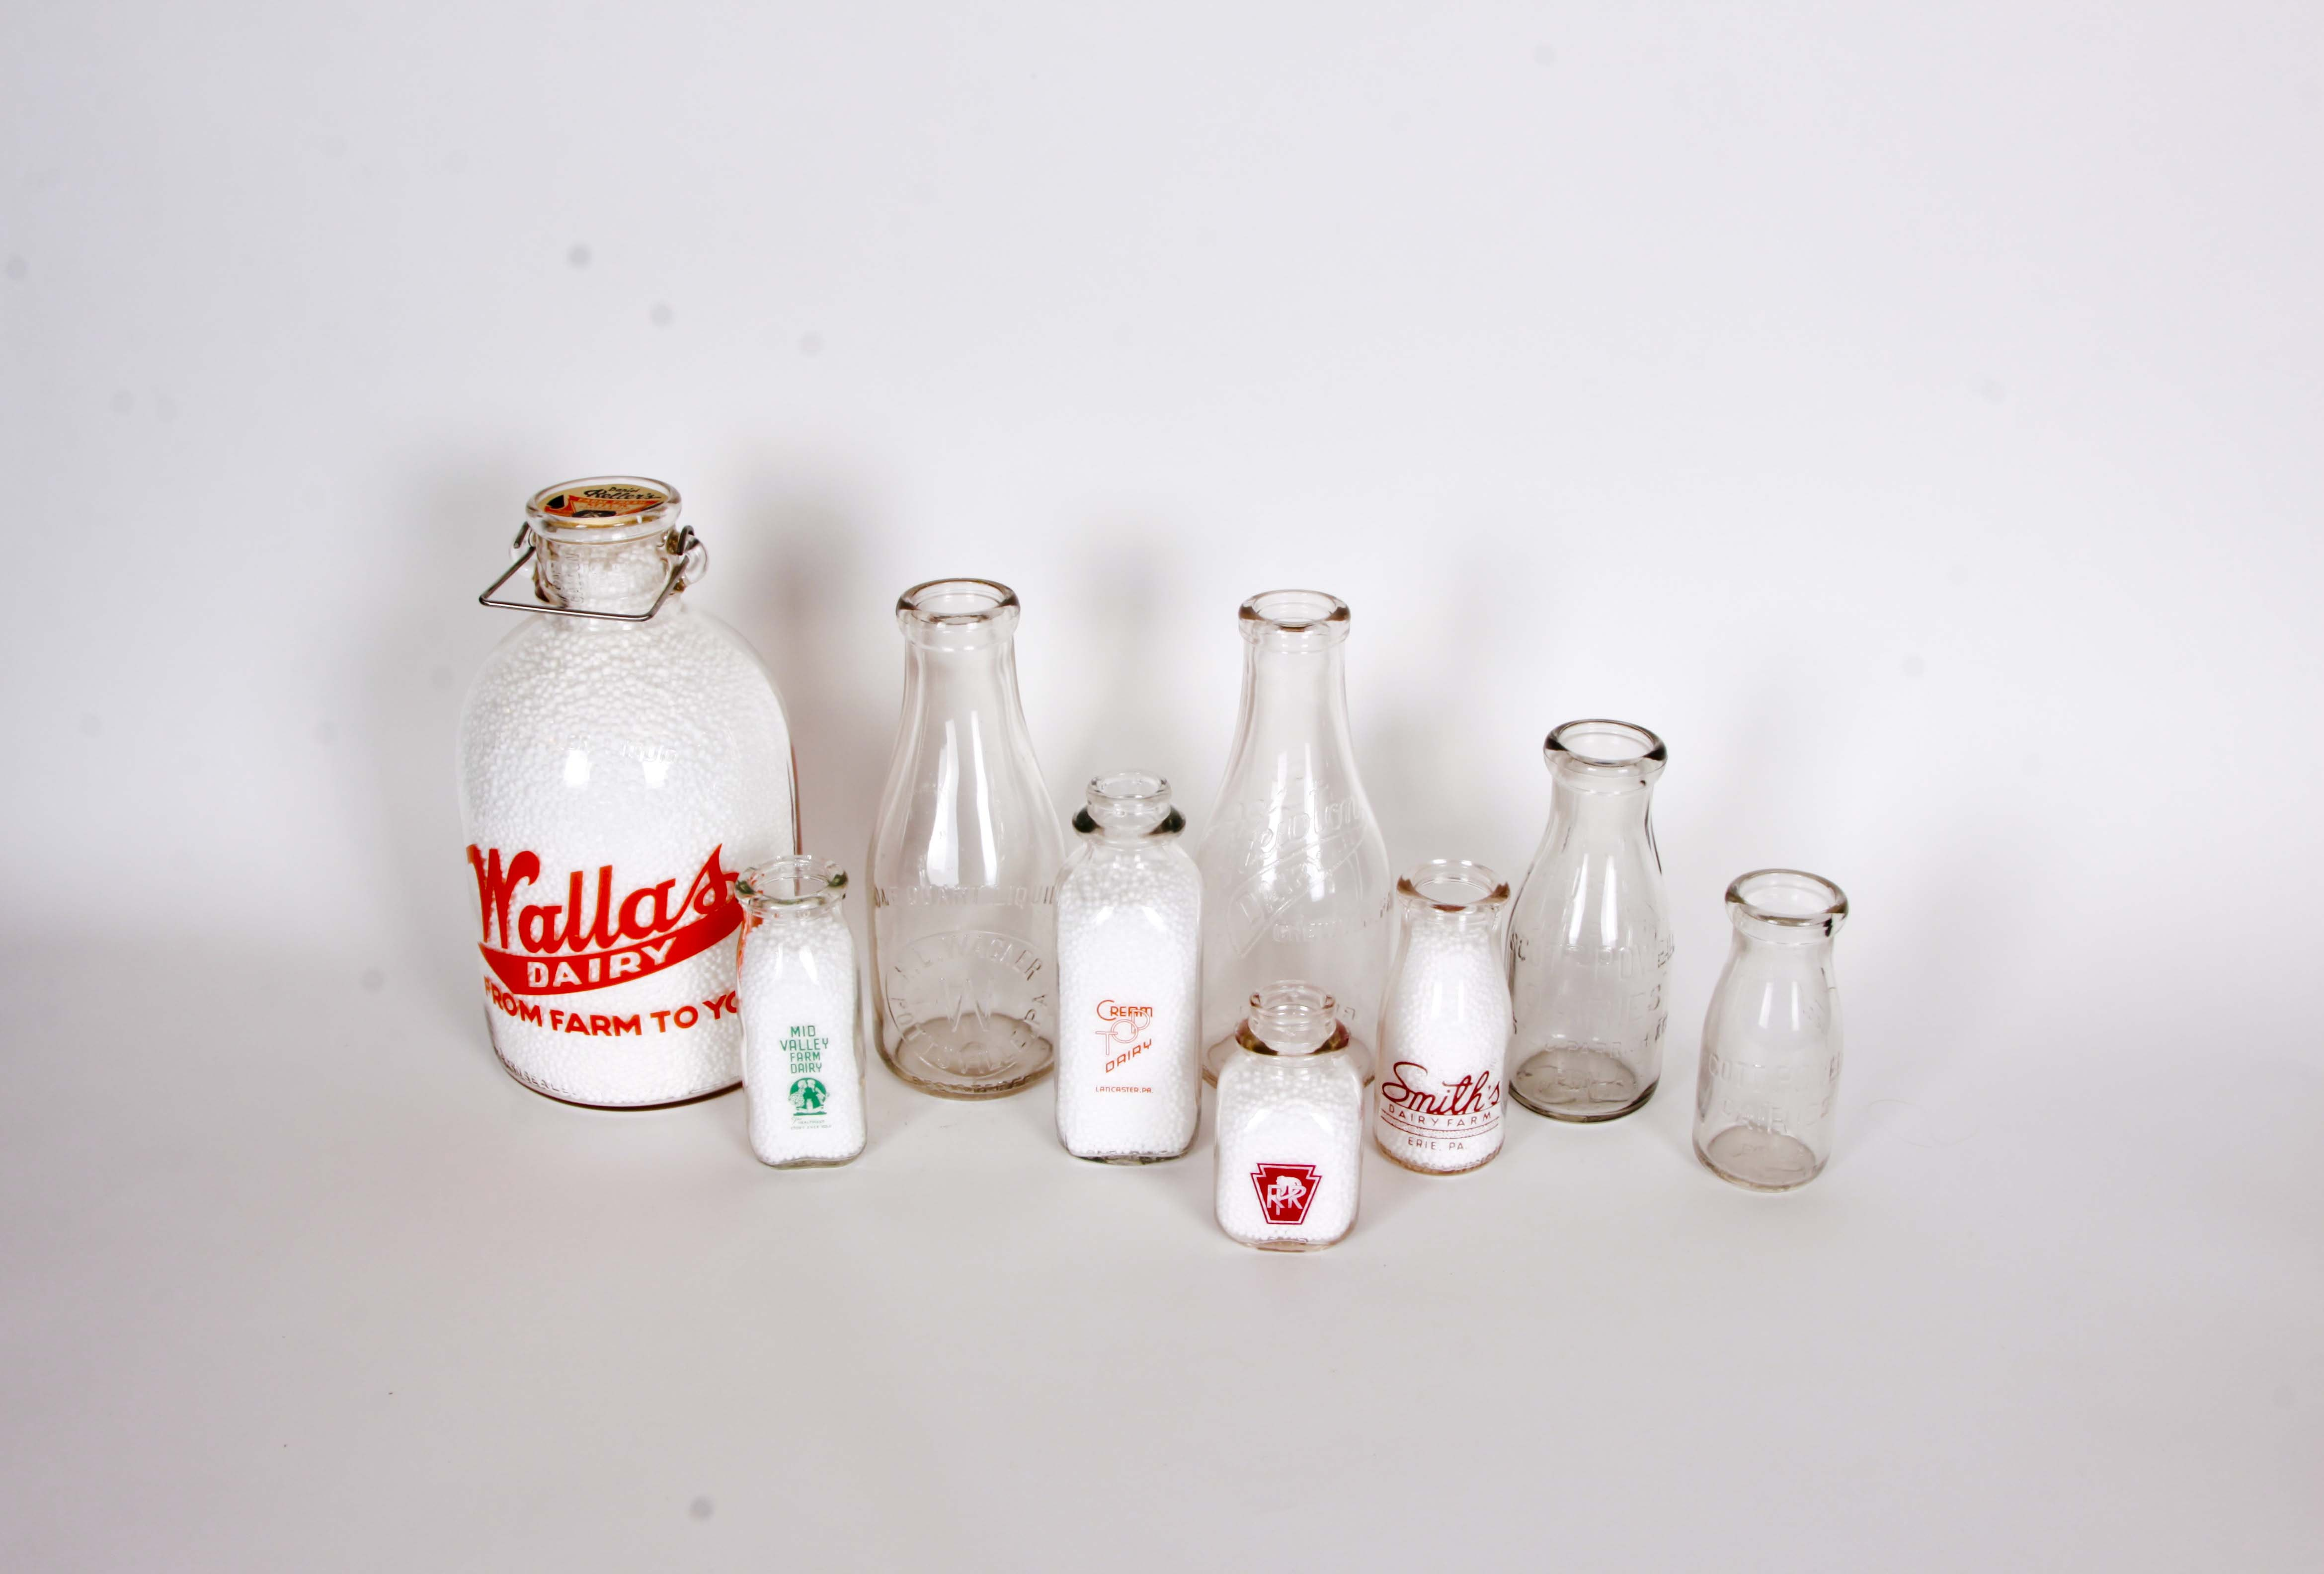 Collection of Vintage Pennsylvania Dairy Bottles and Jars II